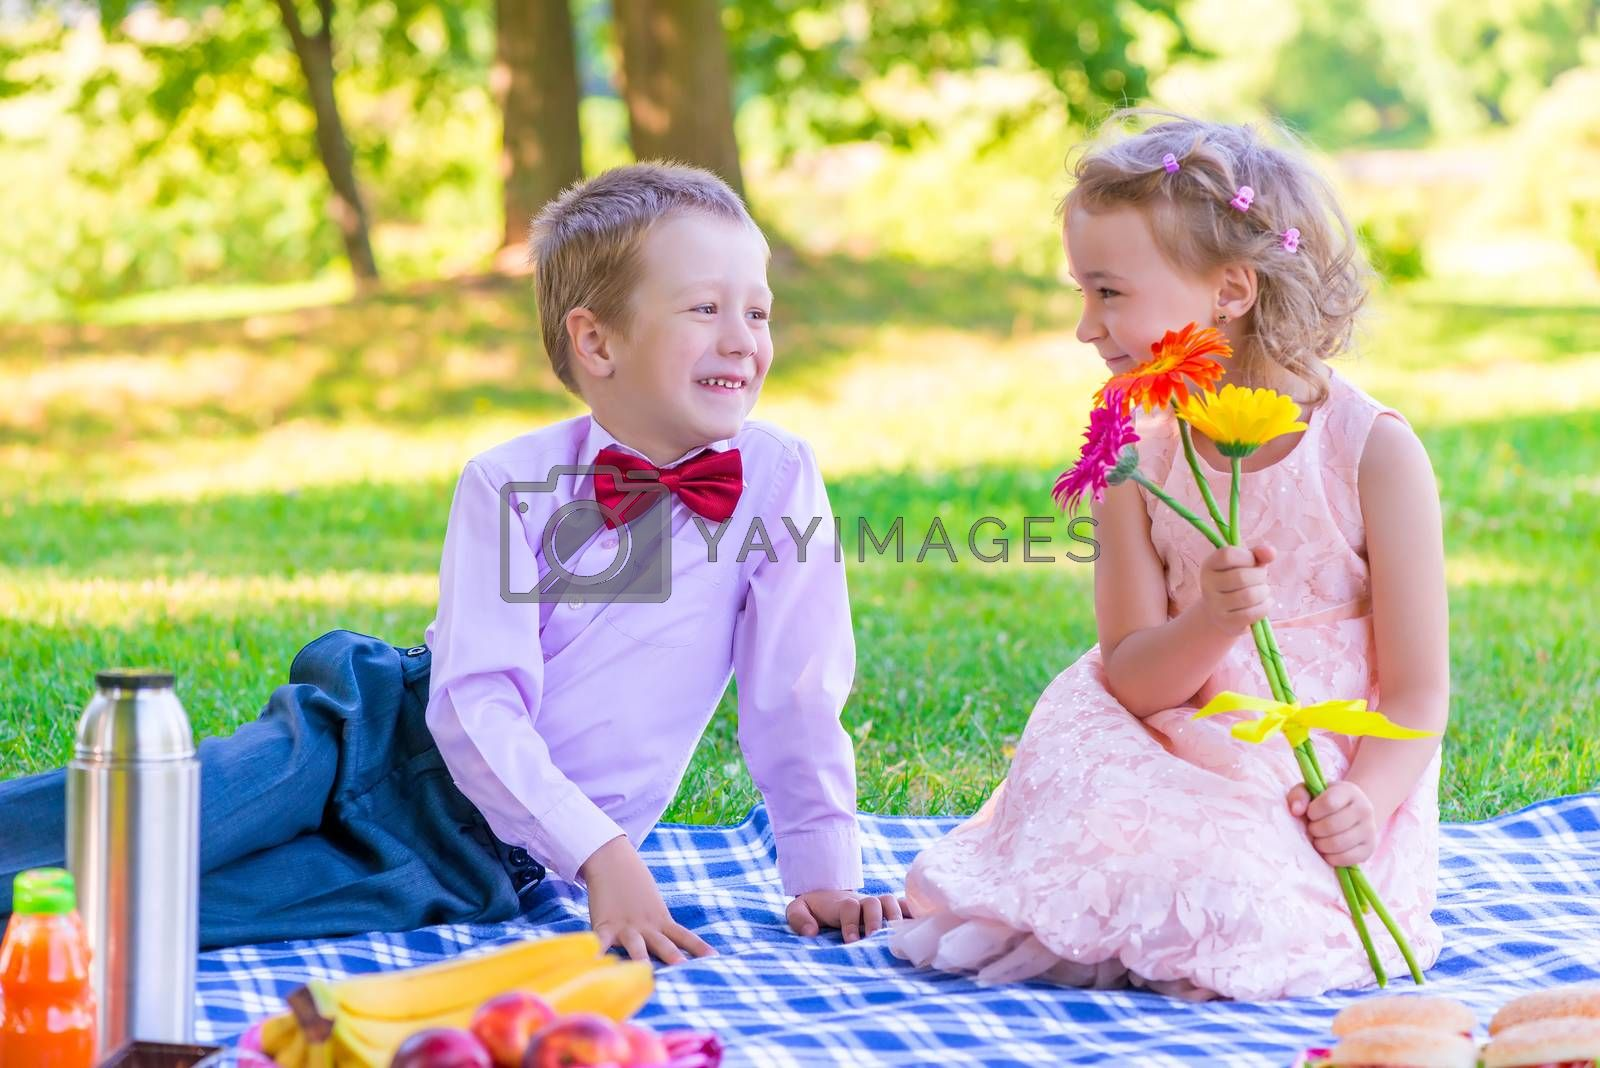 a pair of lovers of children at the picnic on the lawn